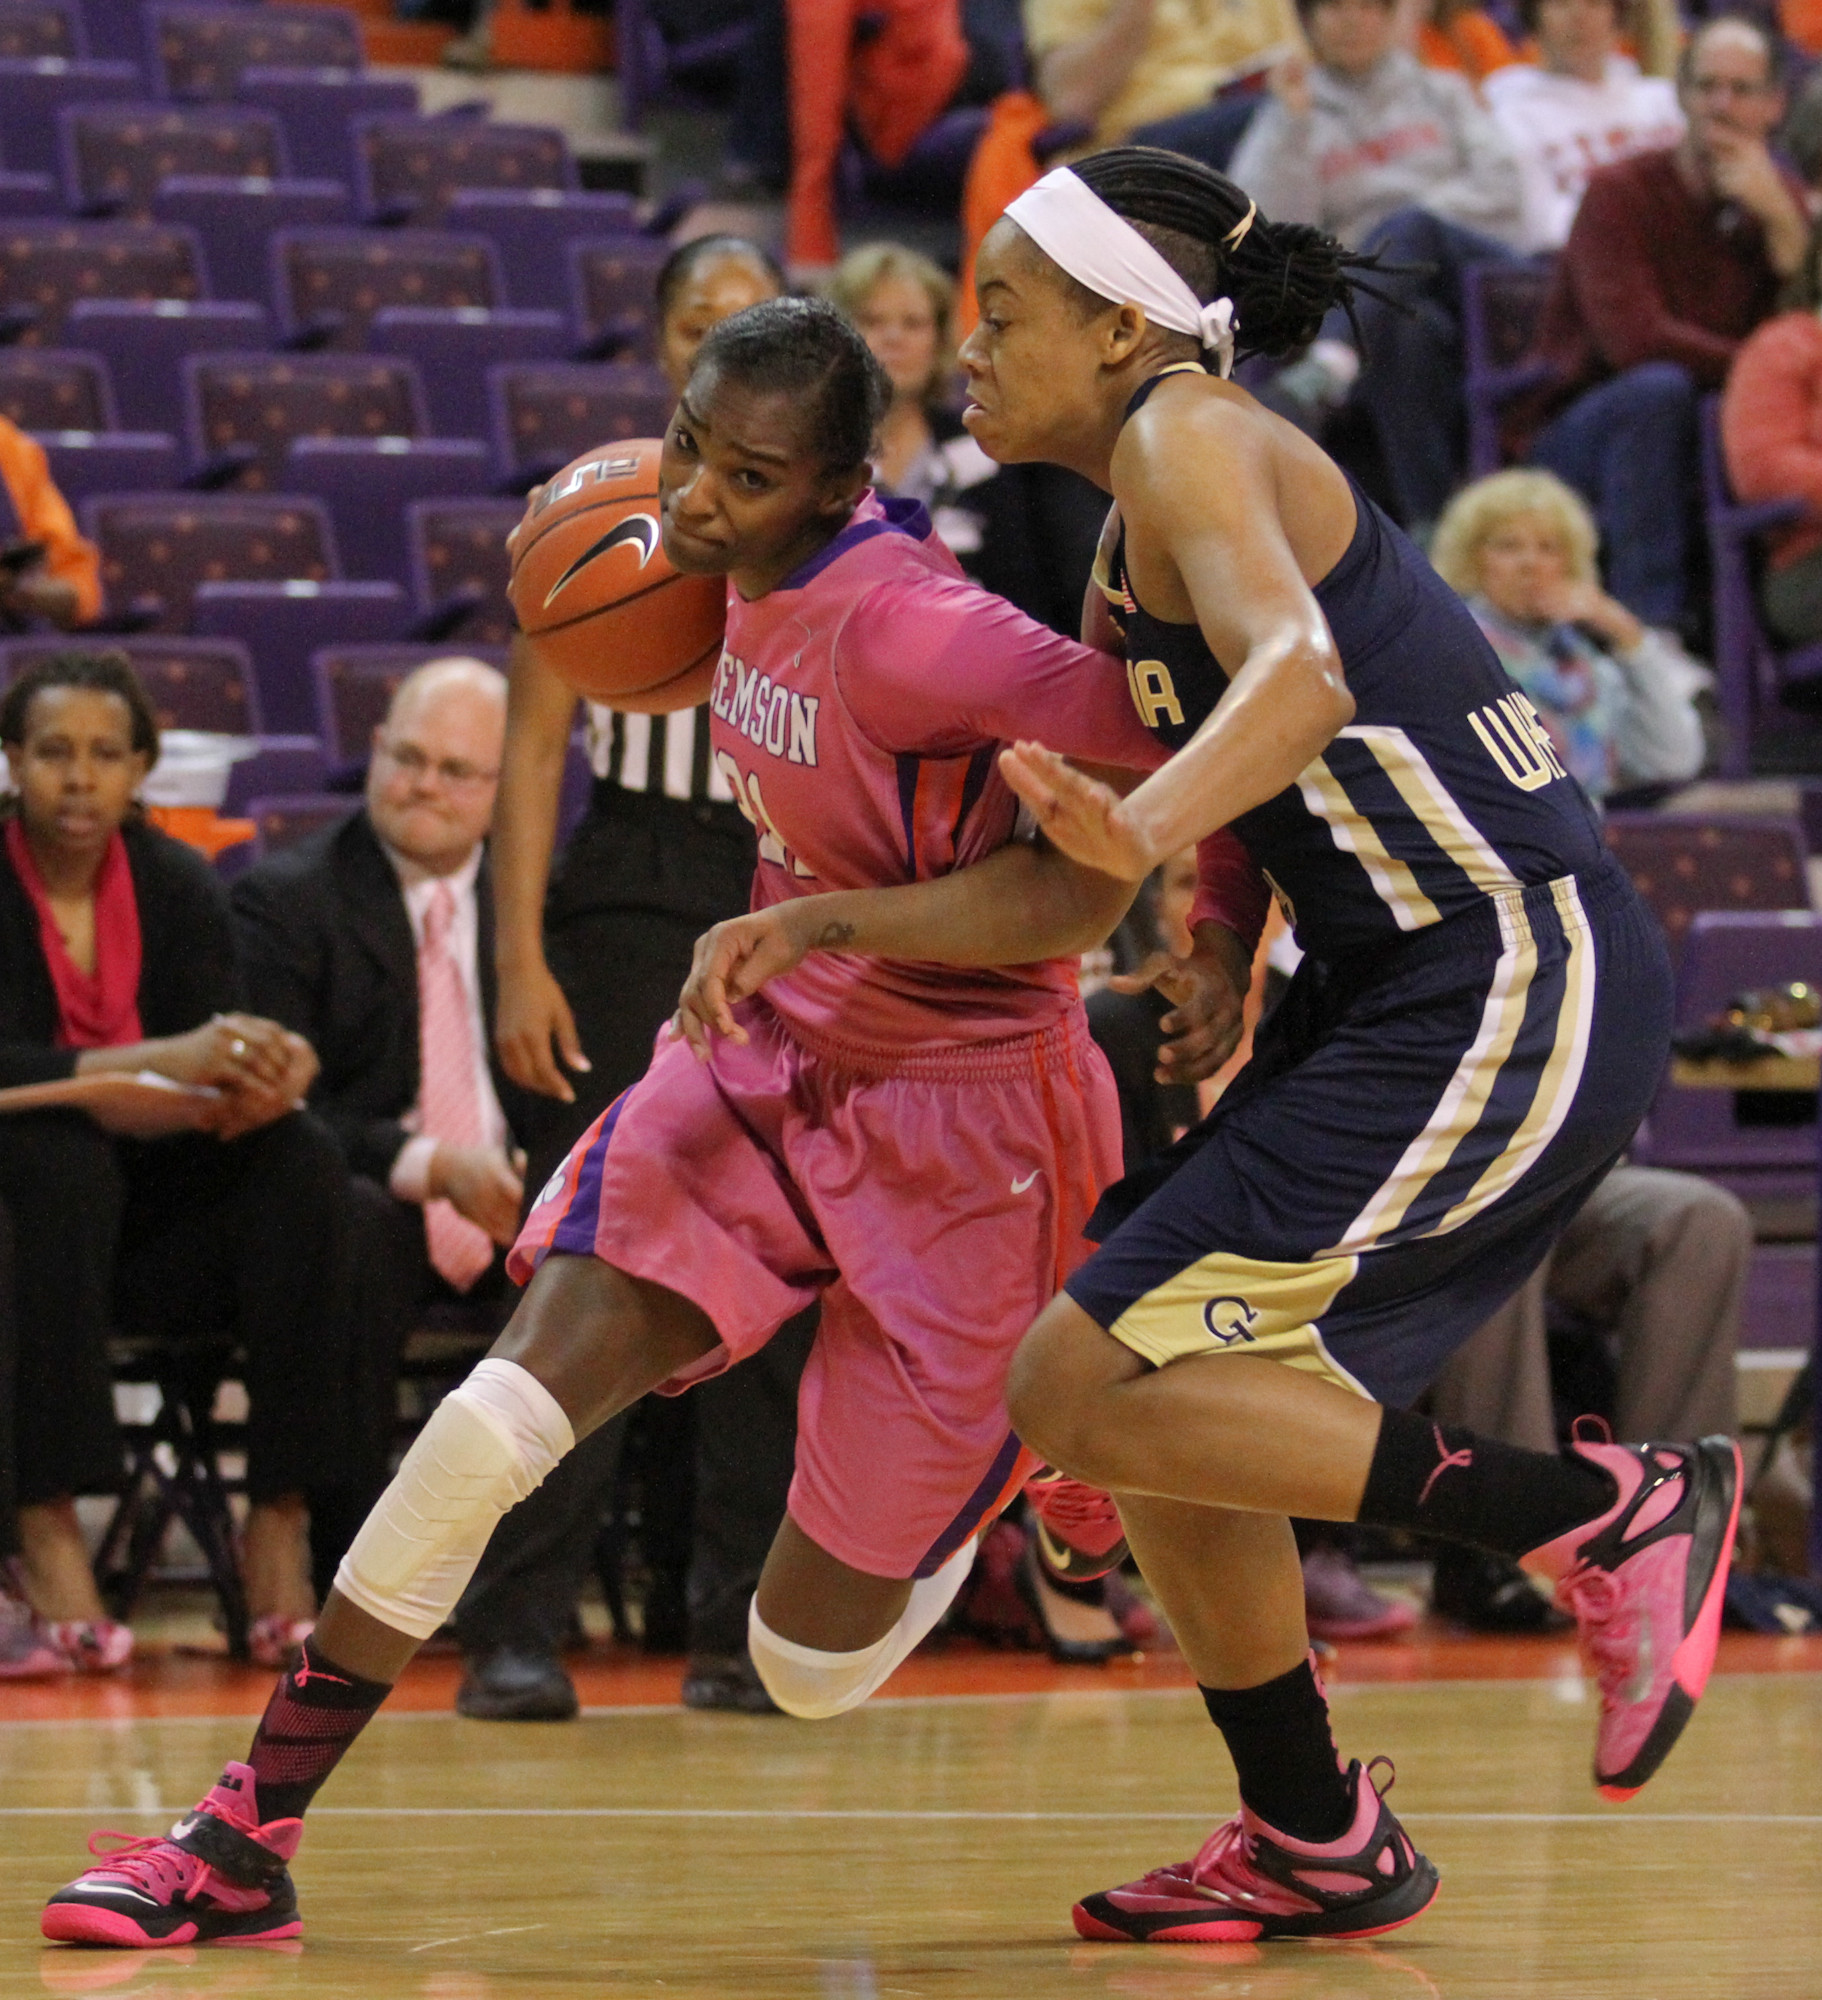 Jackets Outlast Tigers on Play4Kay Day